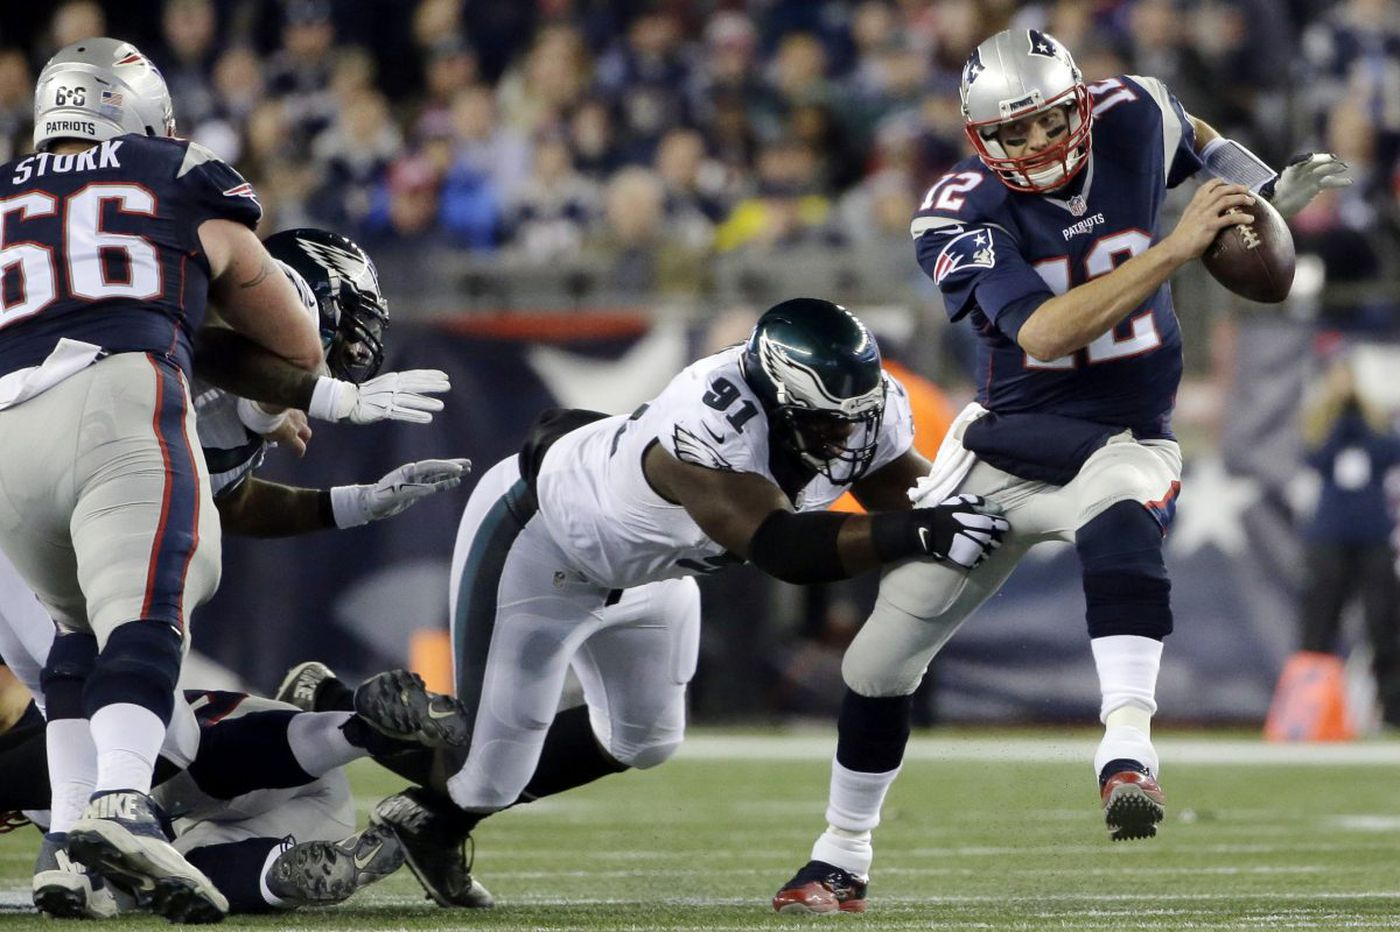 Super Bowl host Minn. will squeeze taxes from Eagles, Patriots